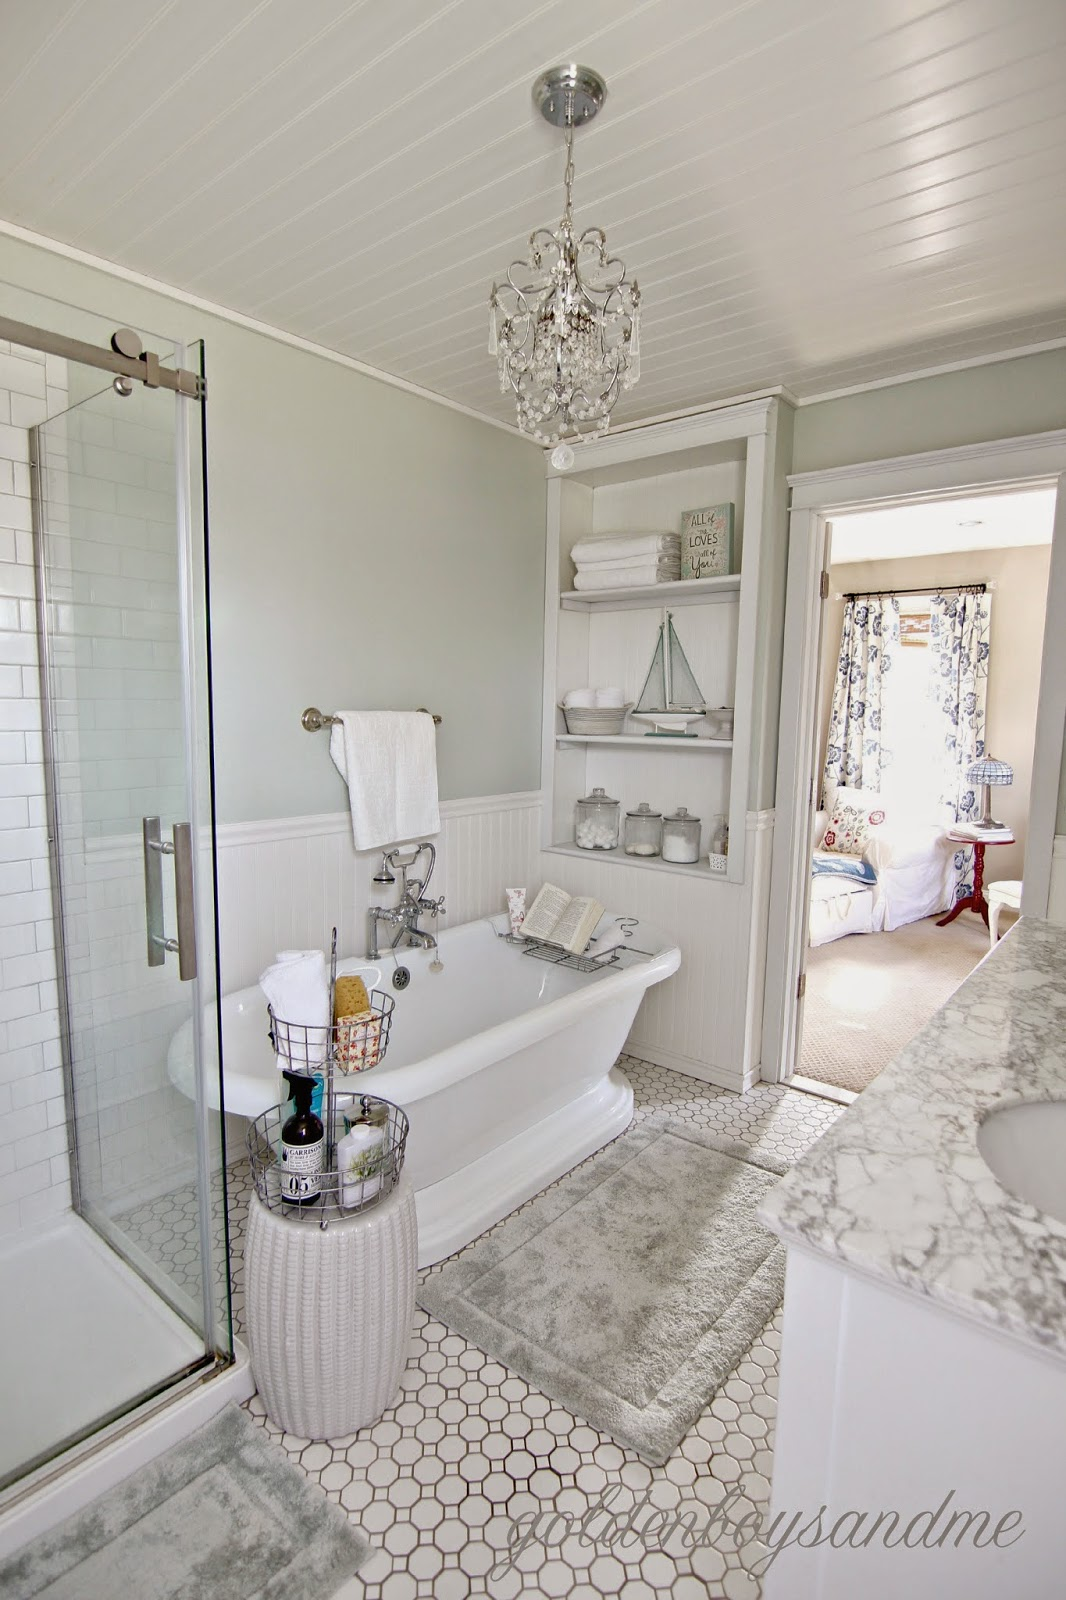 Golden Boys and Me: Revisiting the Master Bathroom & Our 2 ... on Small Bathroom Ideas Pinterest id=30756